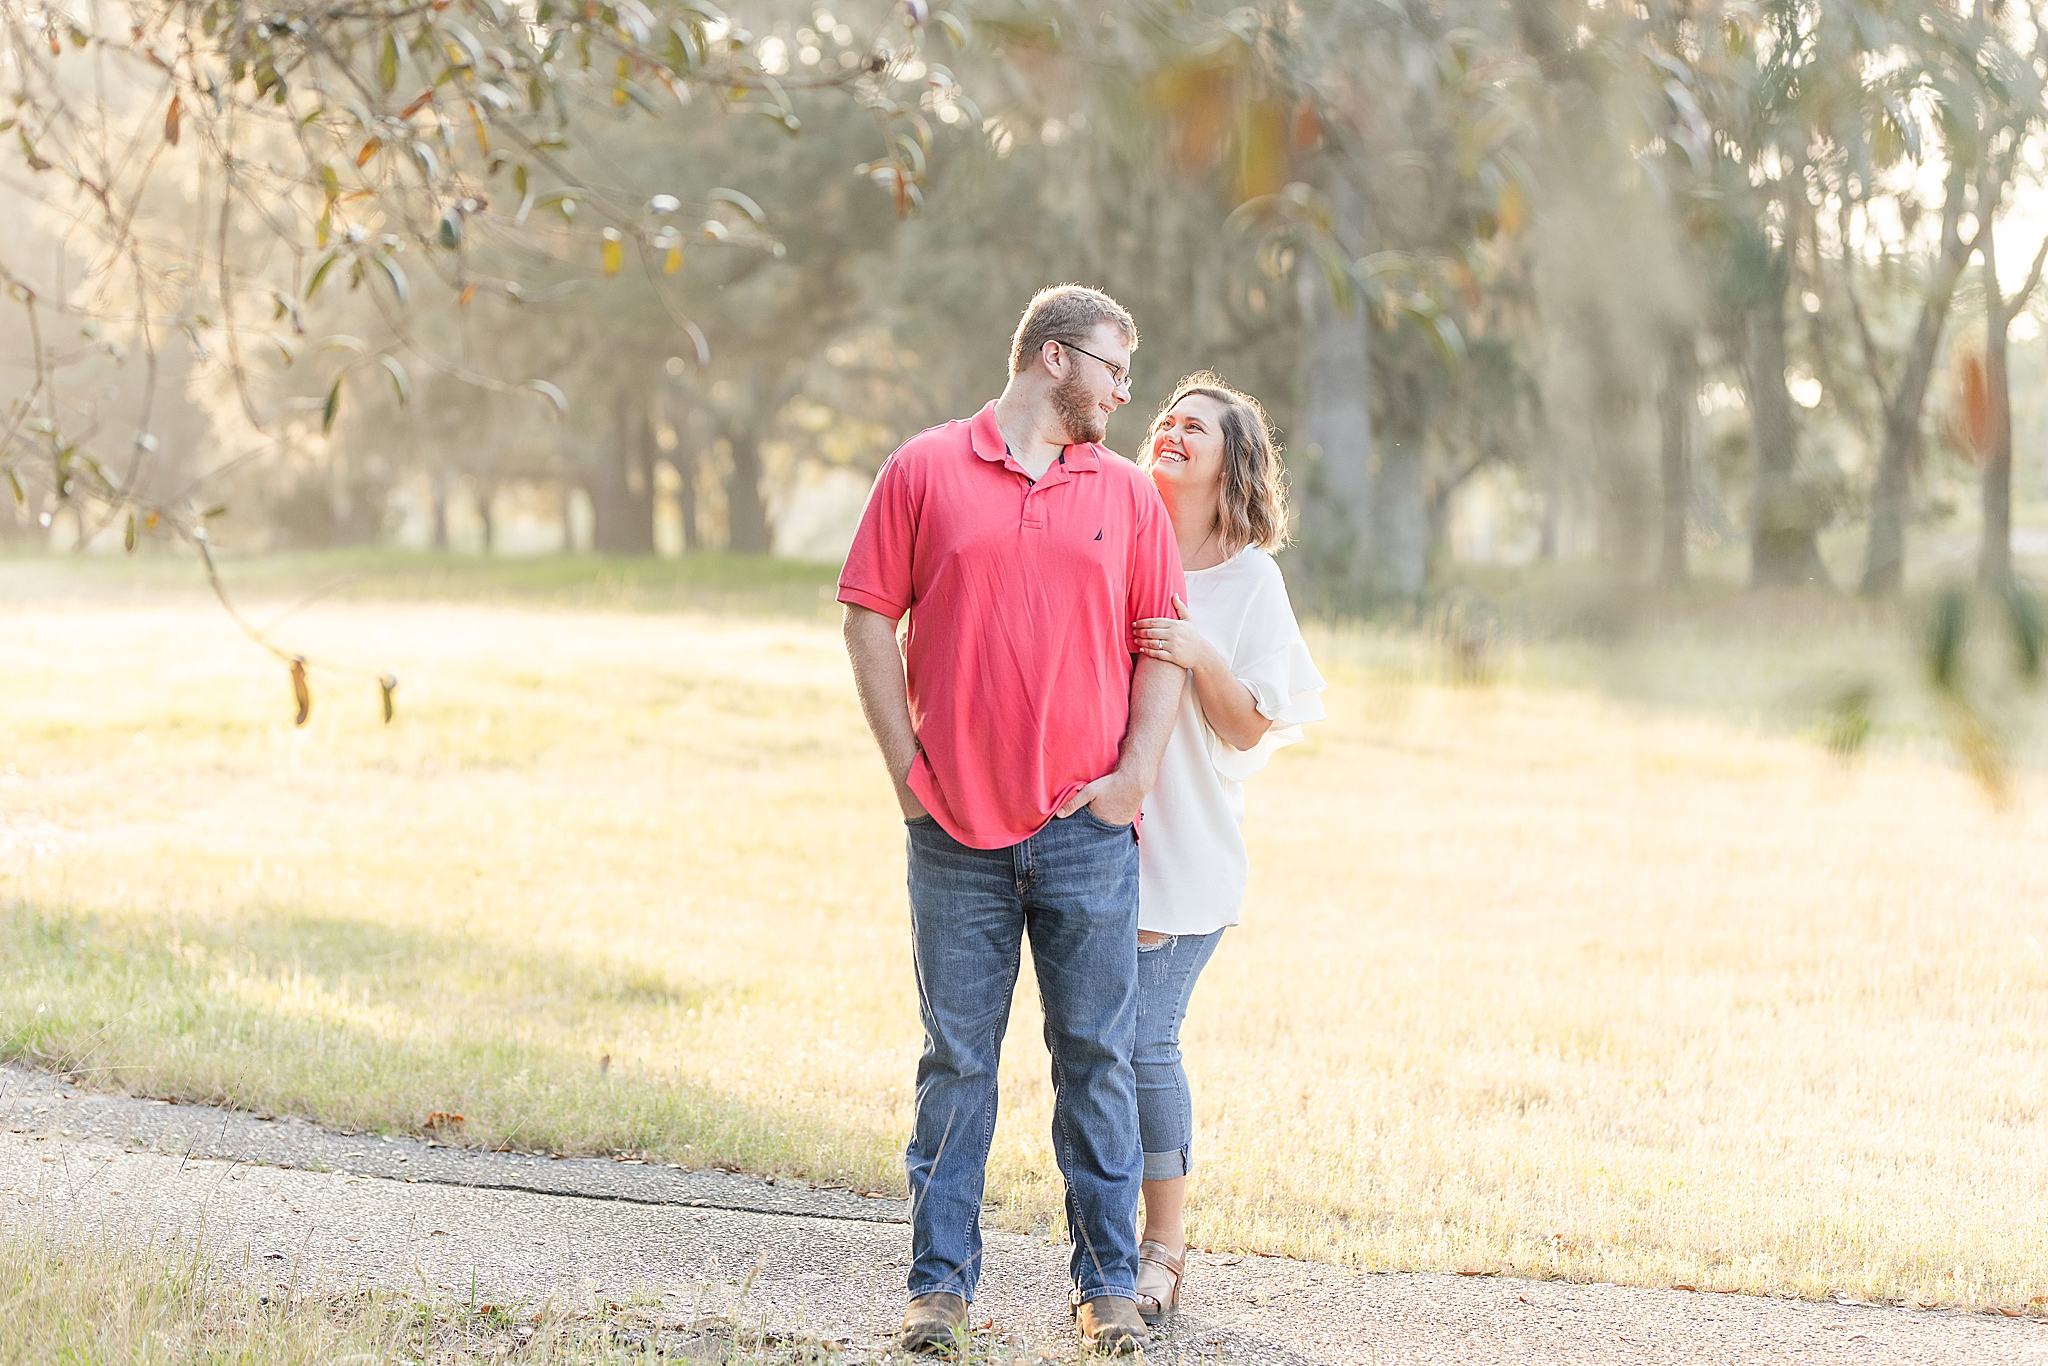 engagement session in Alabama with couple in casual attire